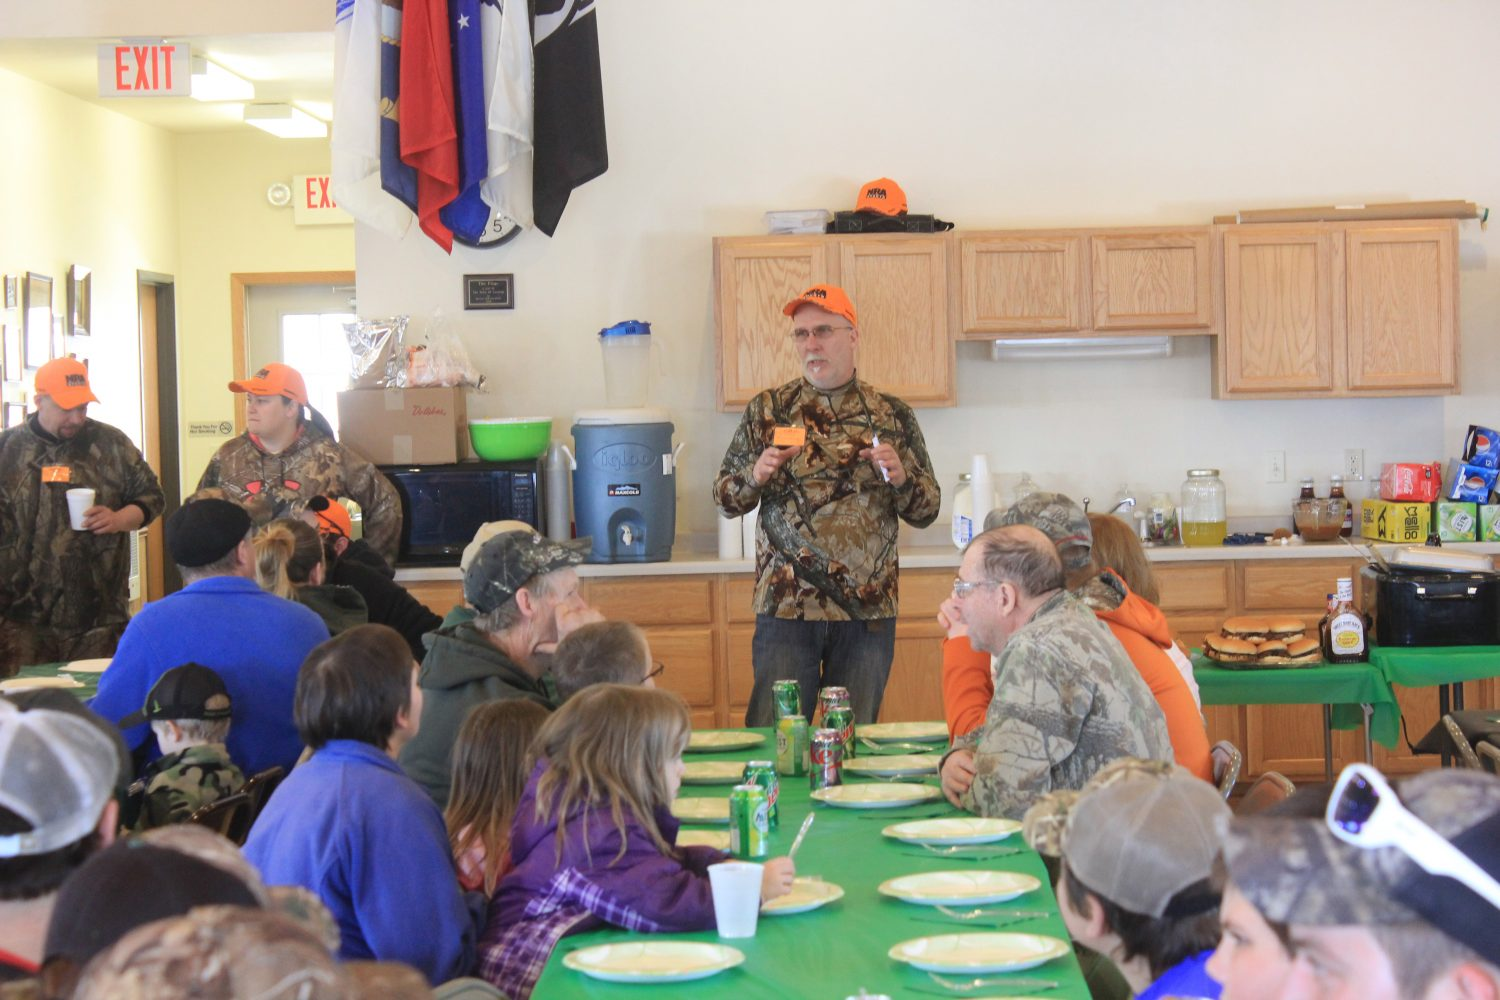 Lincoln County Learn to Hunt Turkey co-chair Todd Wensel addresses the group of hunters, mentors, landowners, sponsors and volunteers during Saturday's luncheon at the Corning Town Hall. -Collin Lueck photo